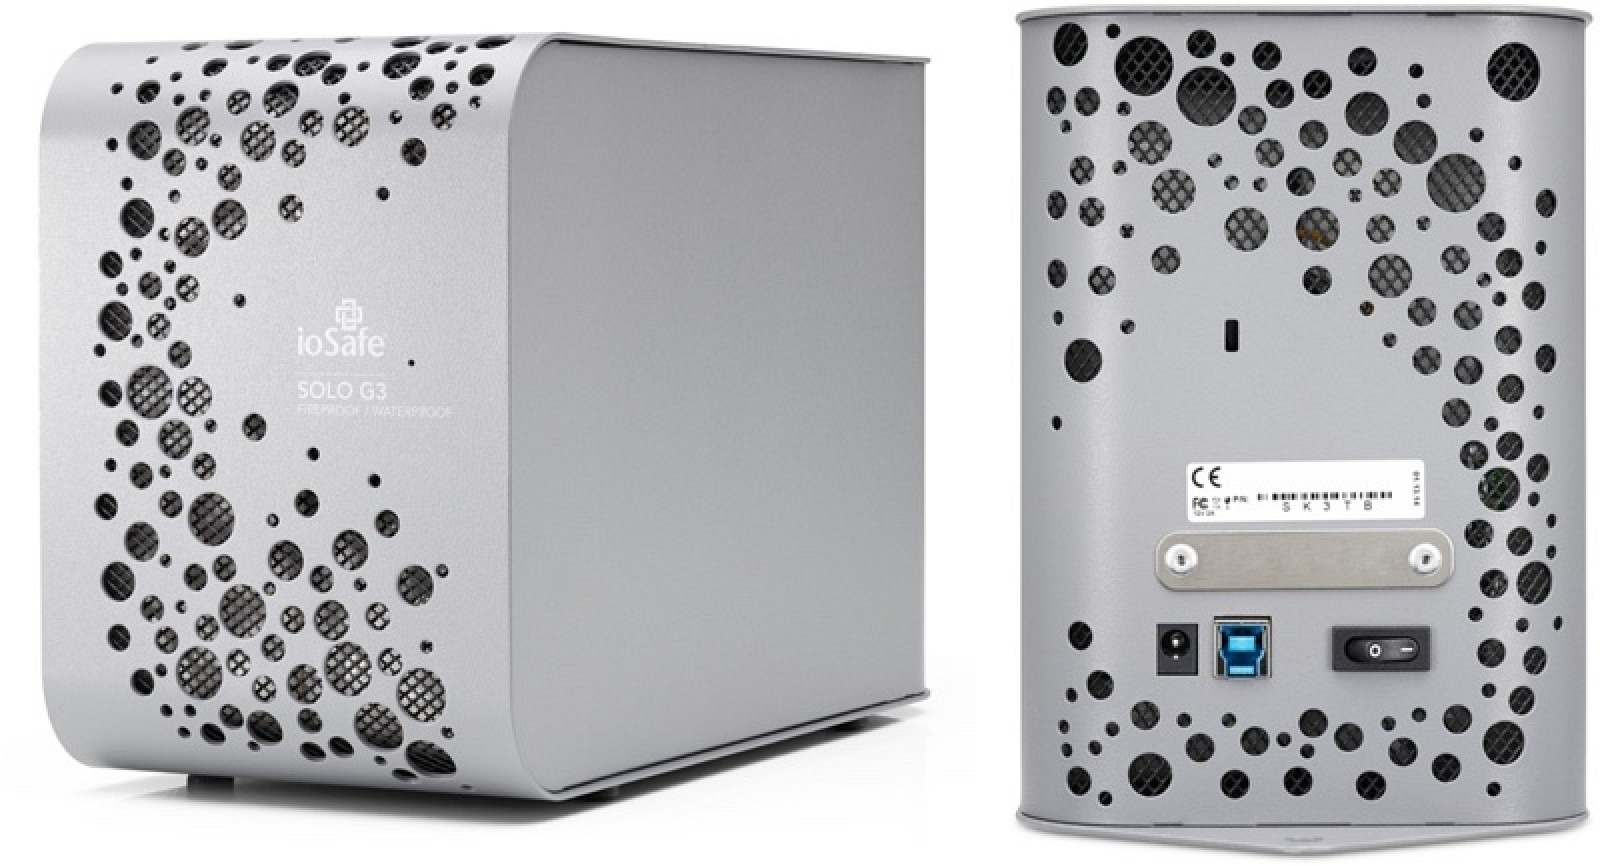 MacRumors Giveaway: Win a Fireproof 2TB Solo G3 Hard Drive From ioSafe ...